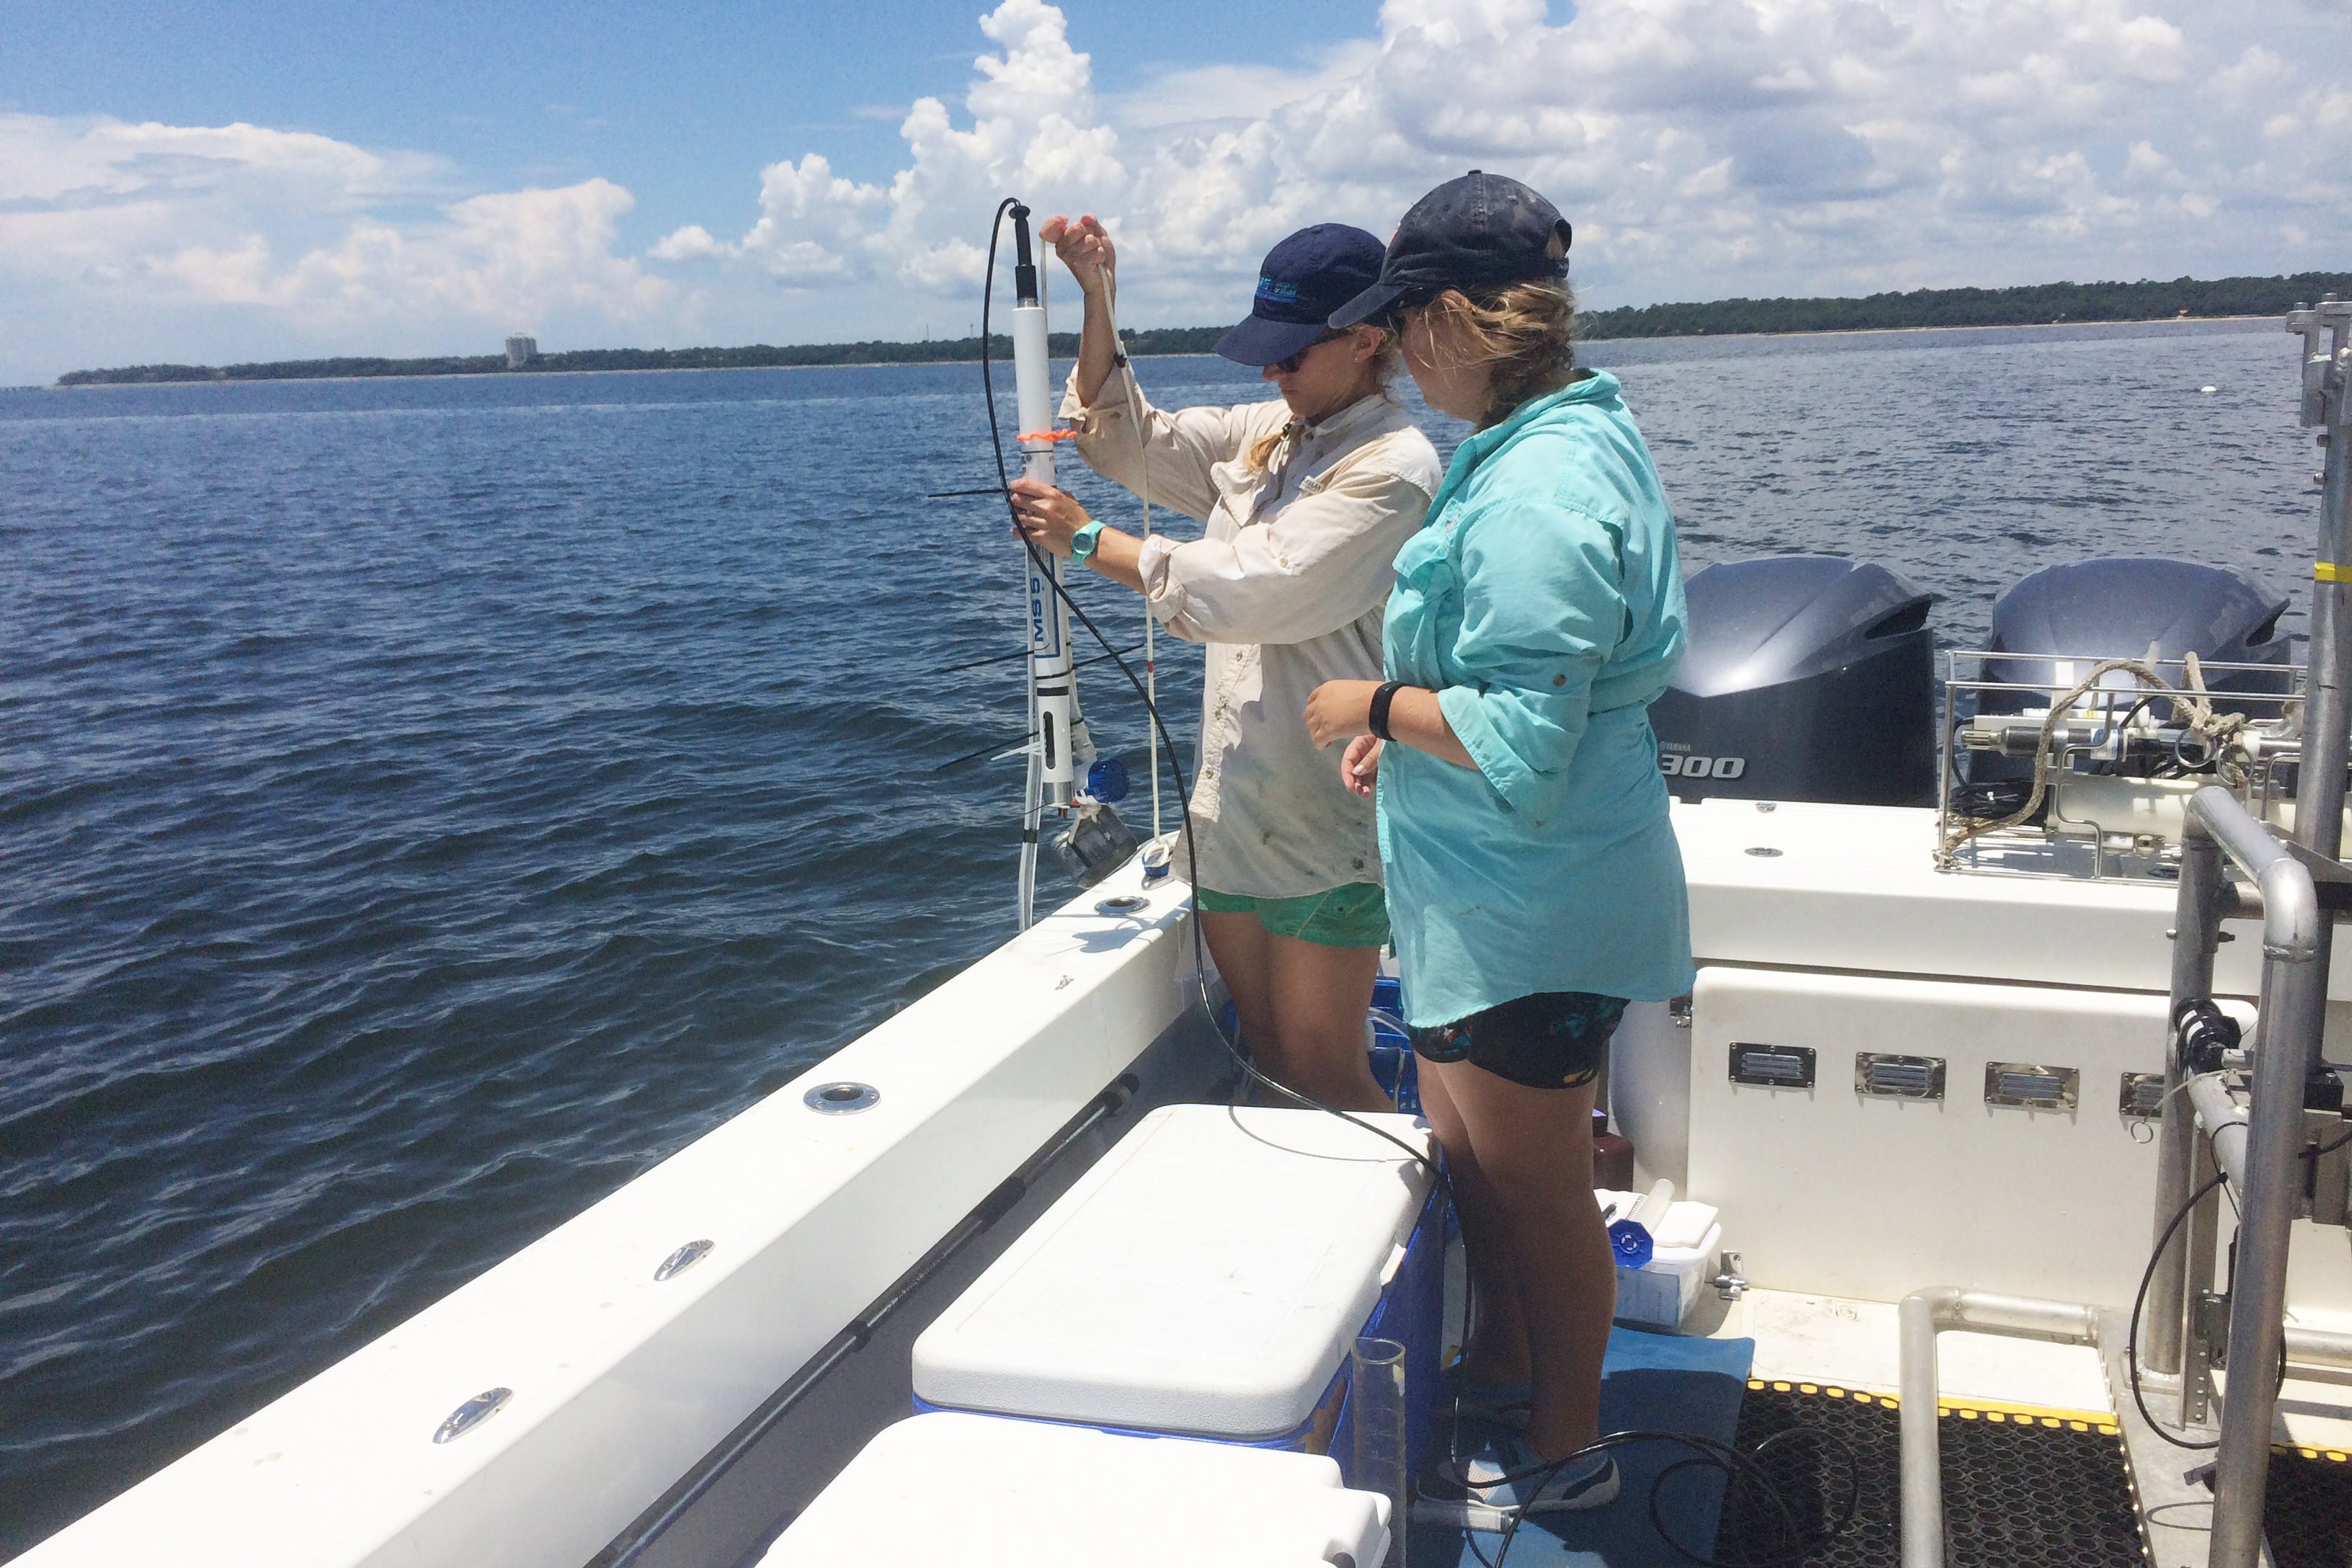 Two scientists on a boat hold a cylindrical monitoring device above the water.